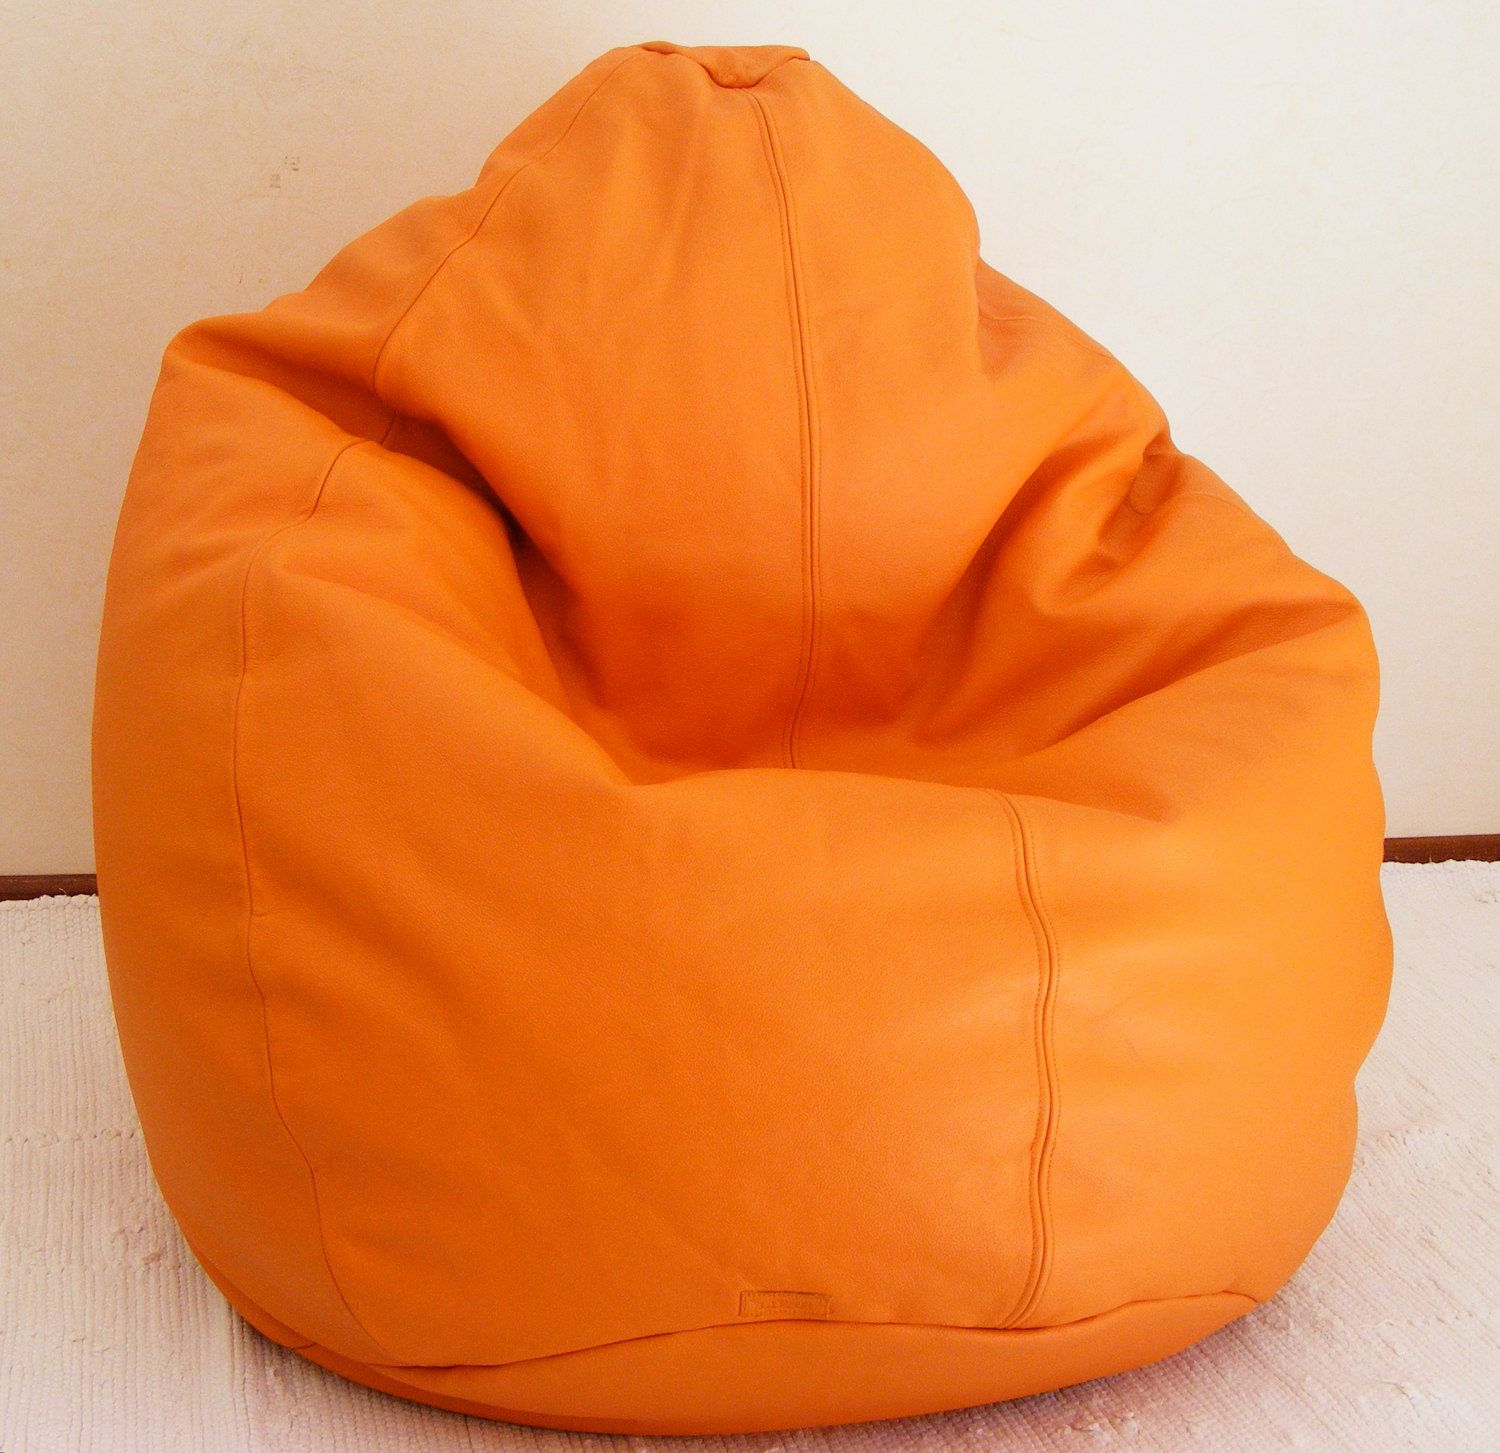 diy bean bag chair cover hair on hide dining chairs sewing pattern by lithashand etsy